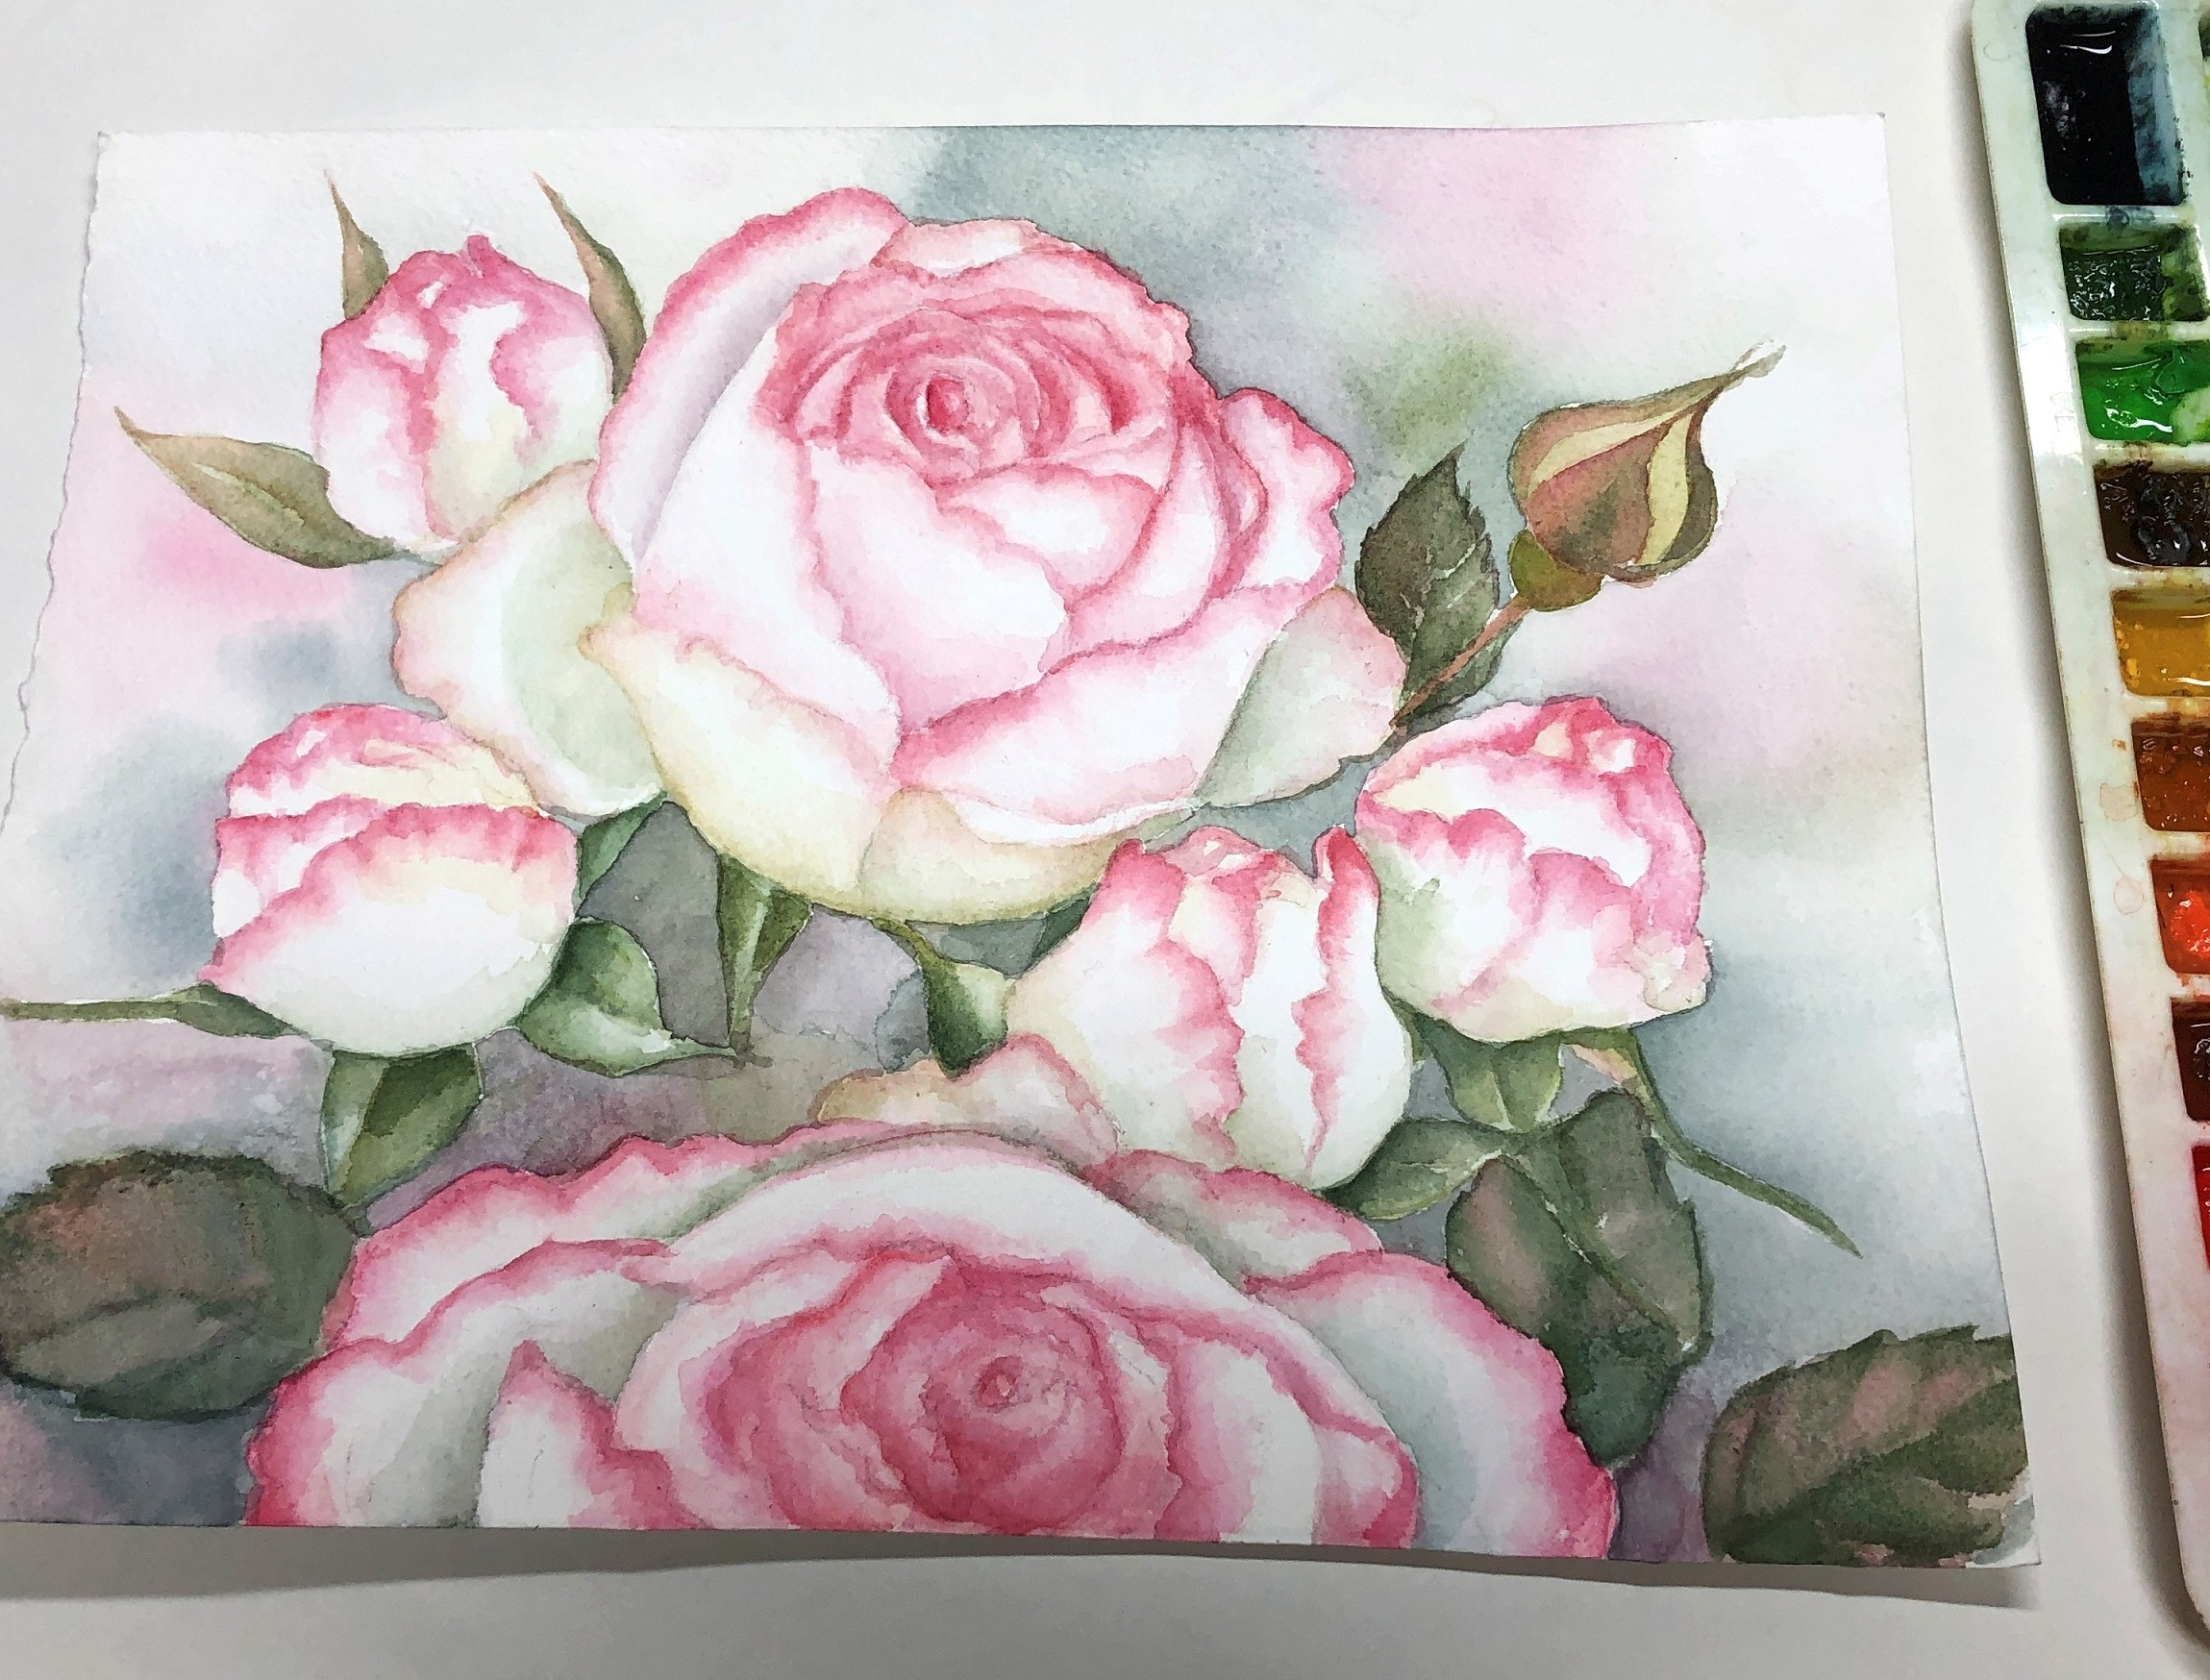 Watercolor flowers: serenity and hope